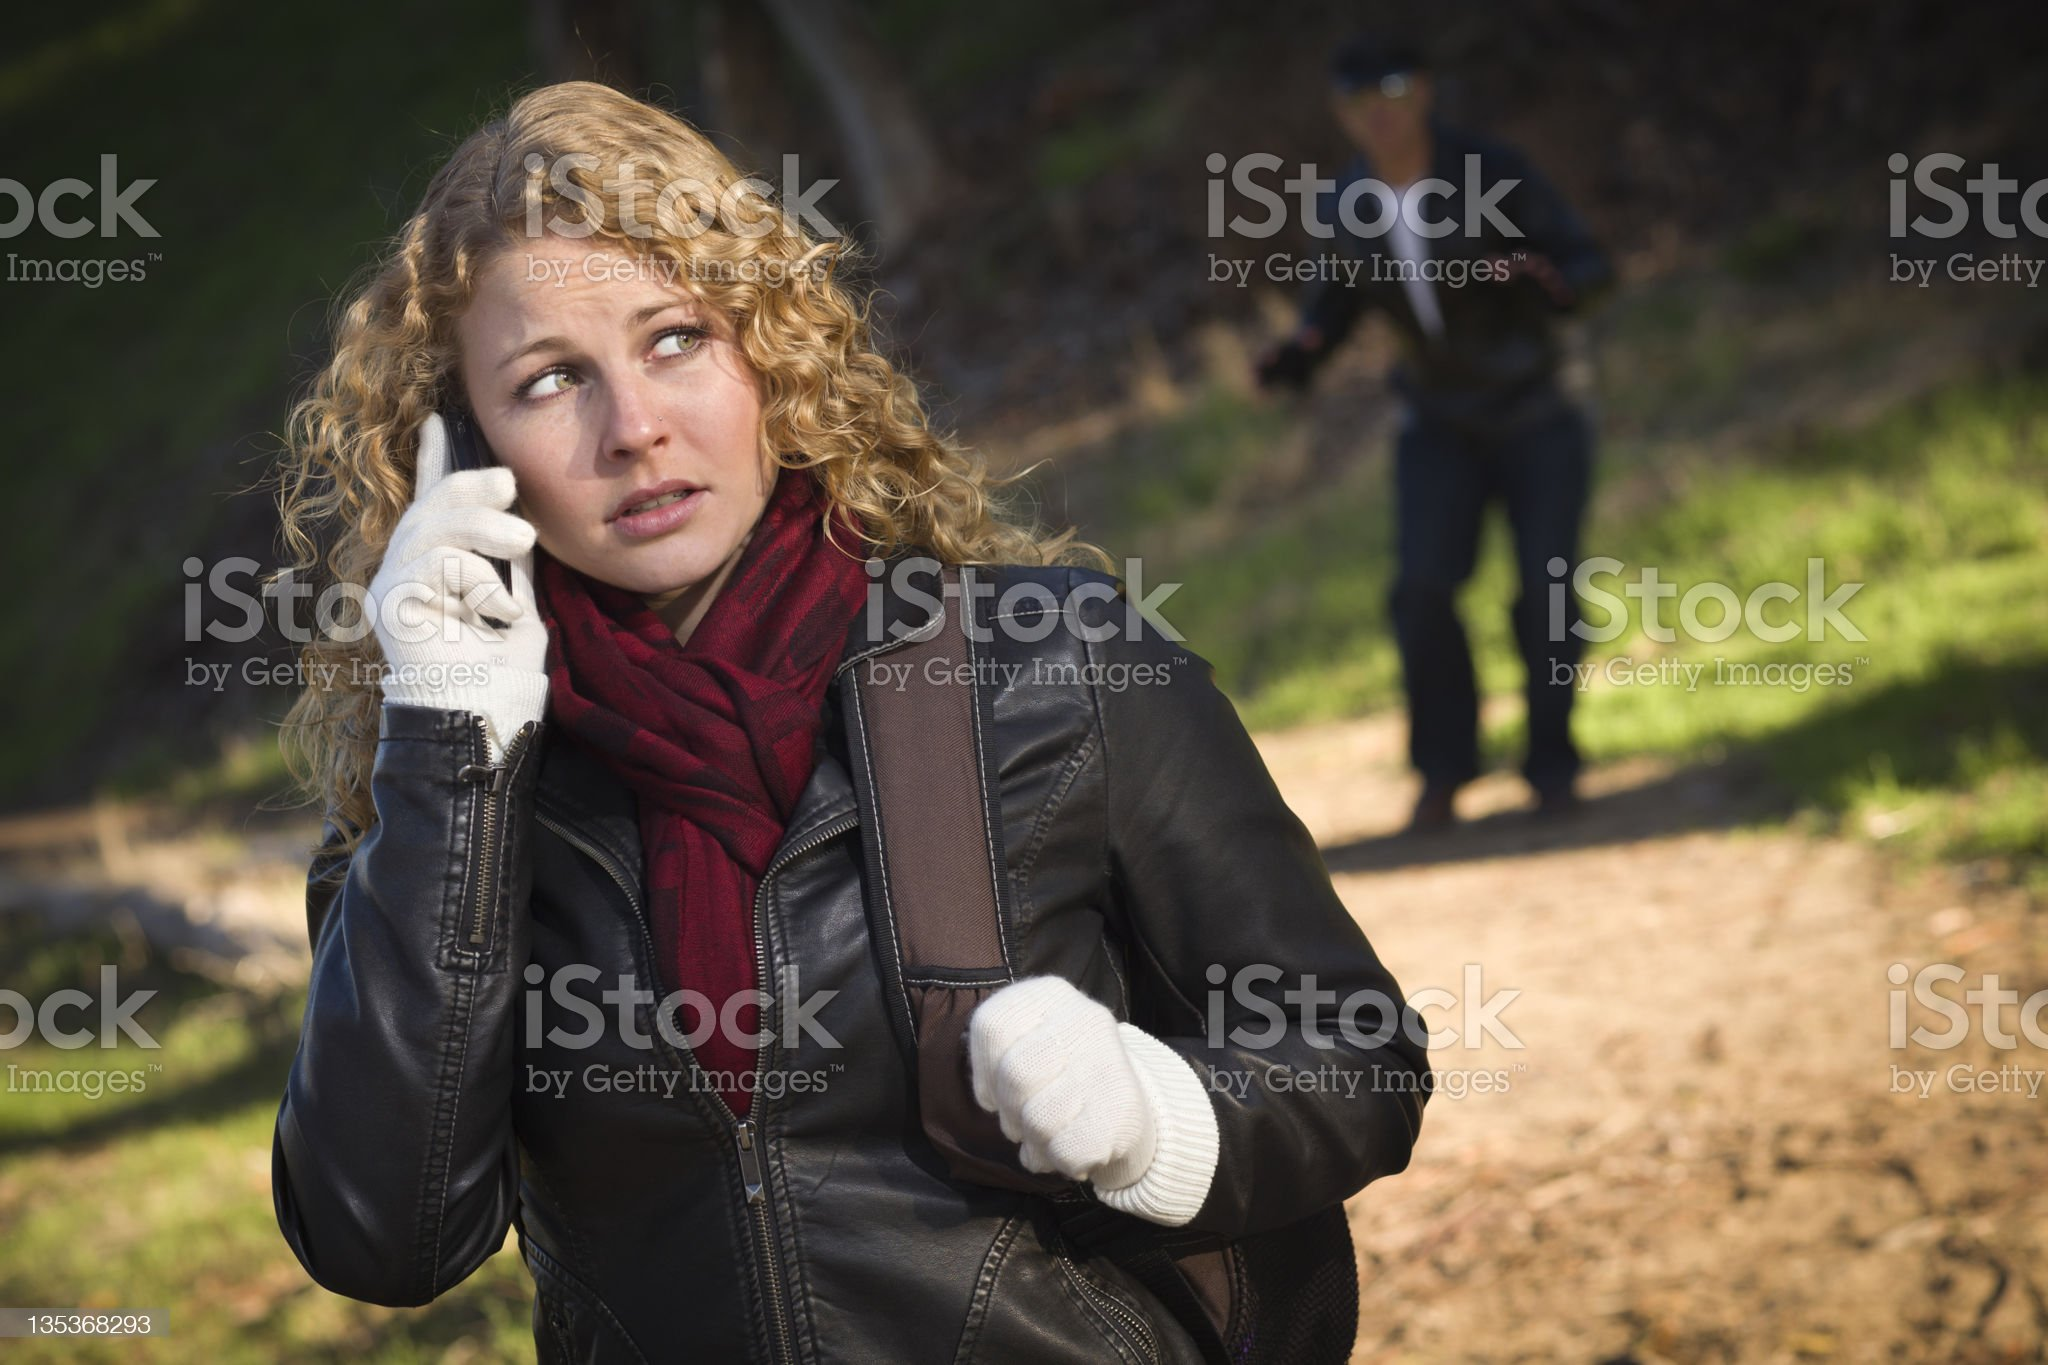 Pretty Young Teen Girl Walking with Man Lurking Behind Her royalty-free stock photo